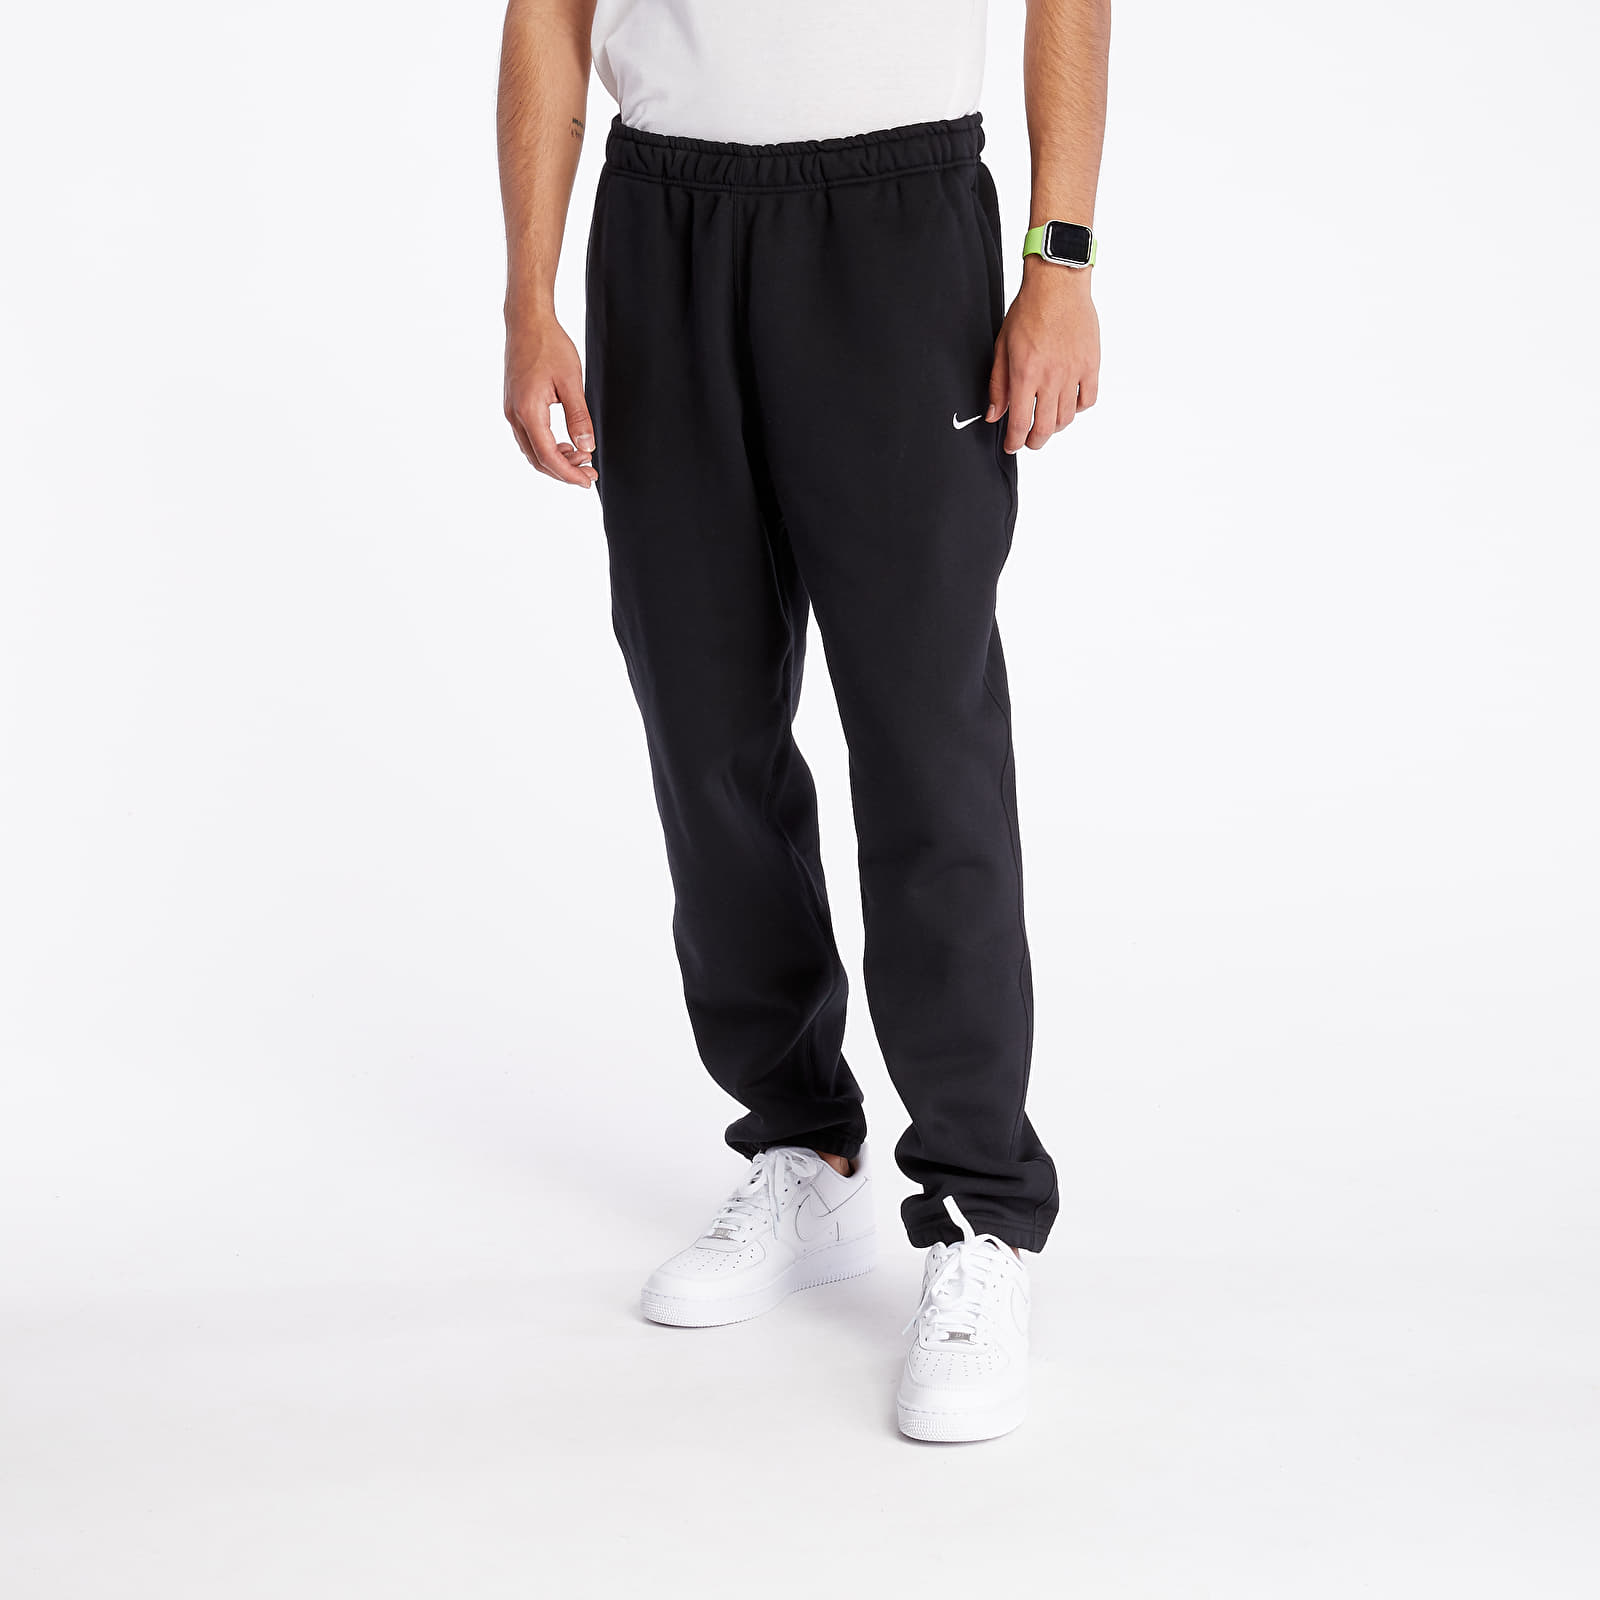 Pants and jeans NikeLab NRG Pants Black/ White